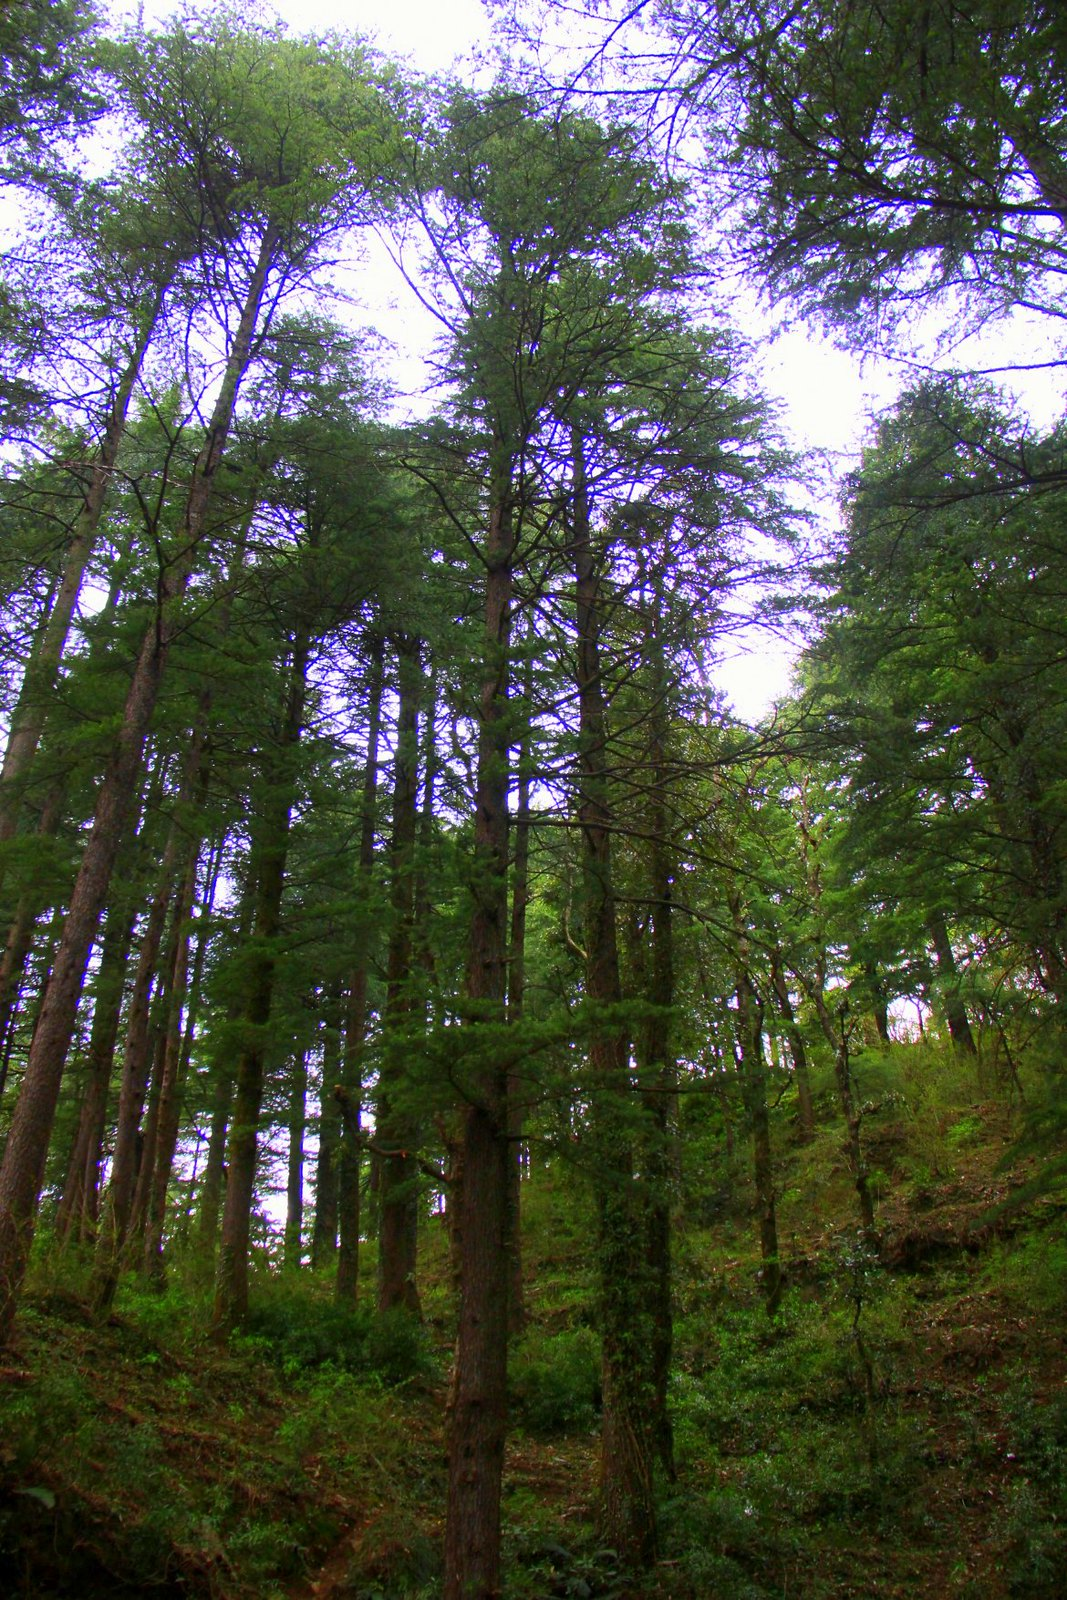 The pine forests and waterfalls around Dharamkot are great for hiking